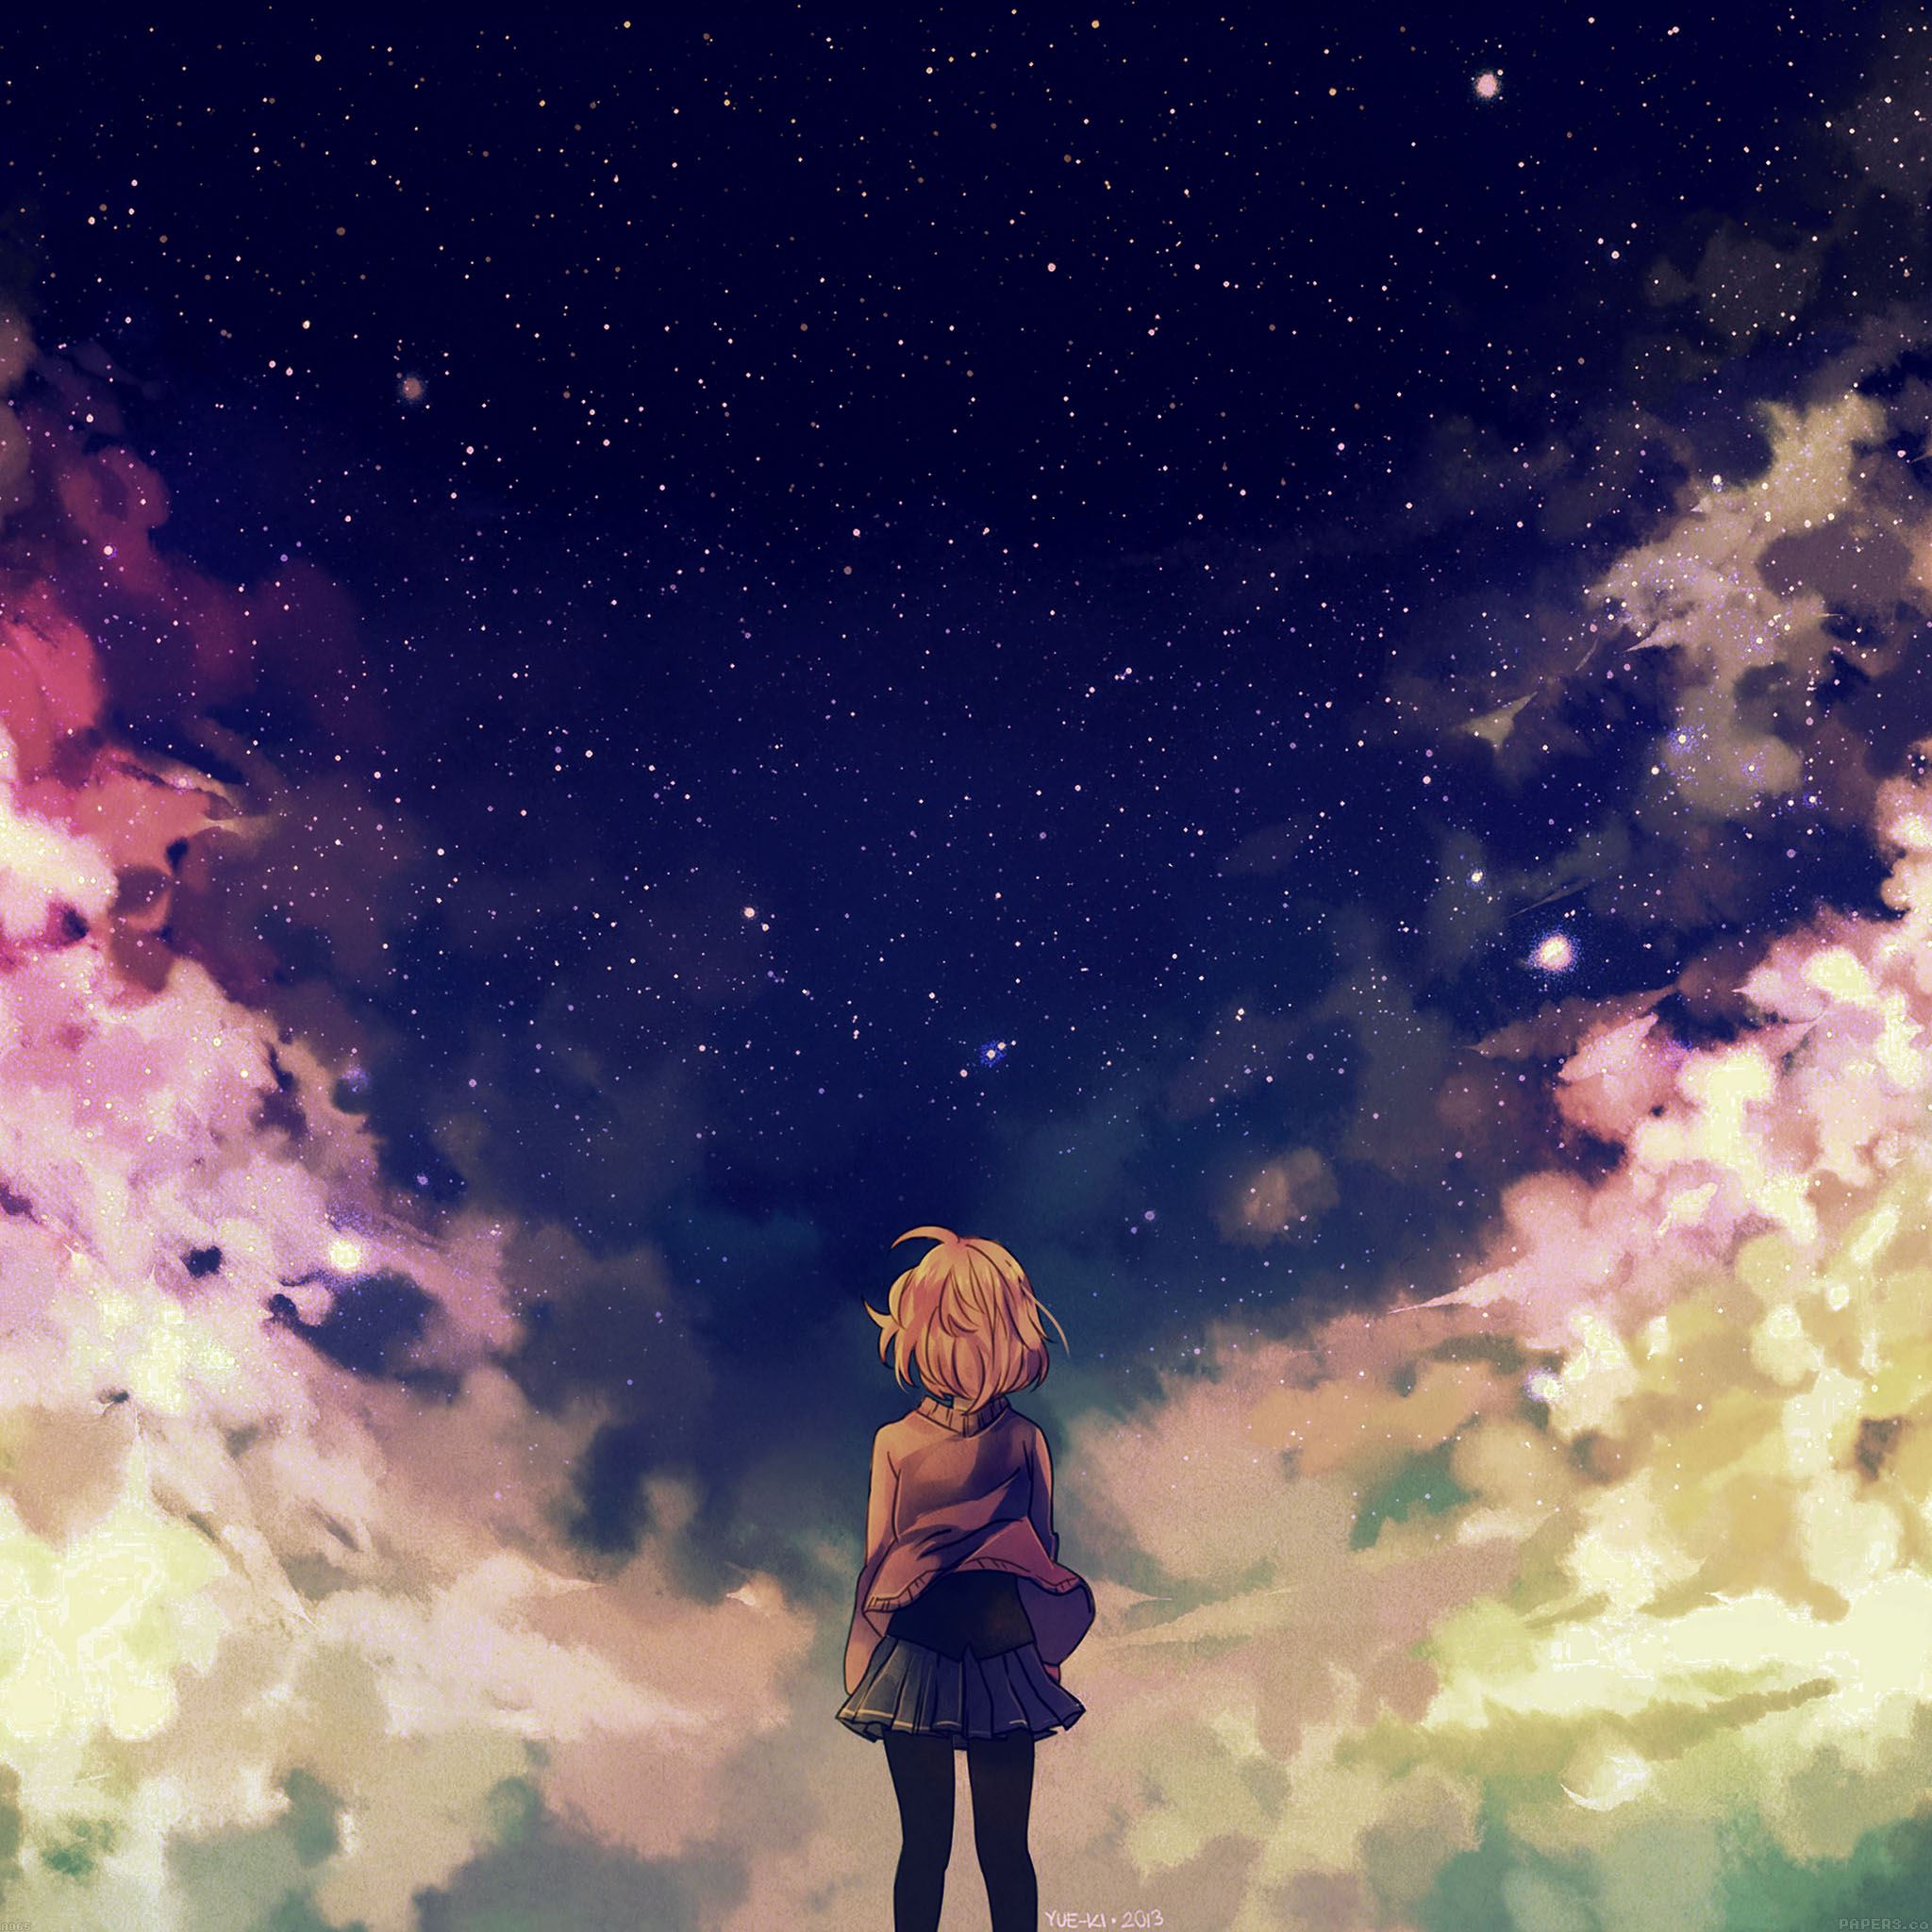 Starry space illust anime girl iPad Air wallpaper